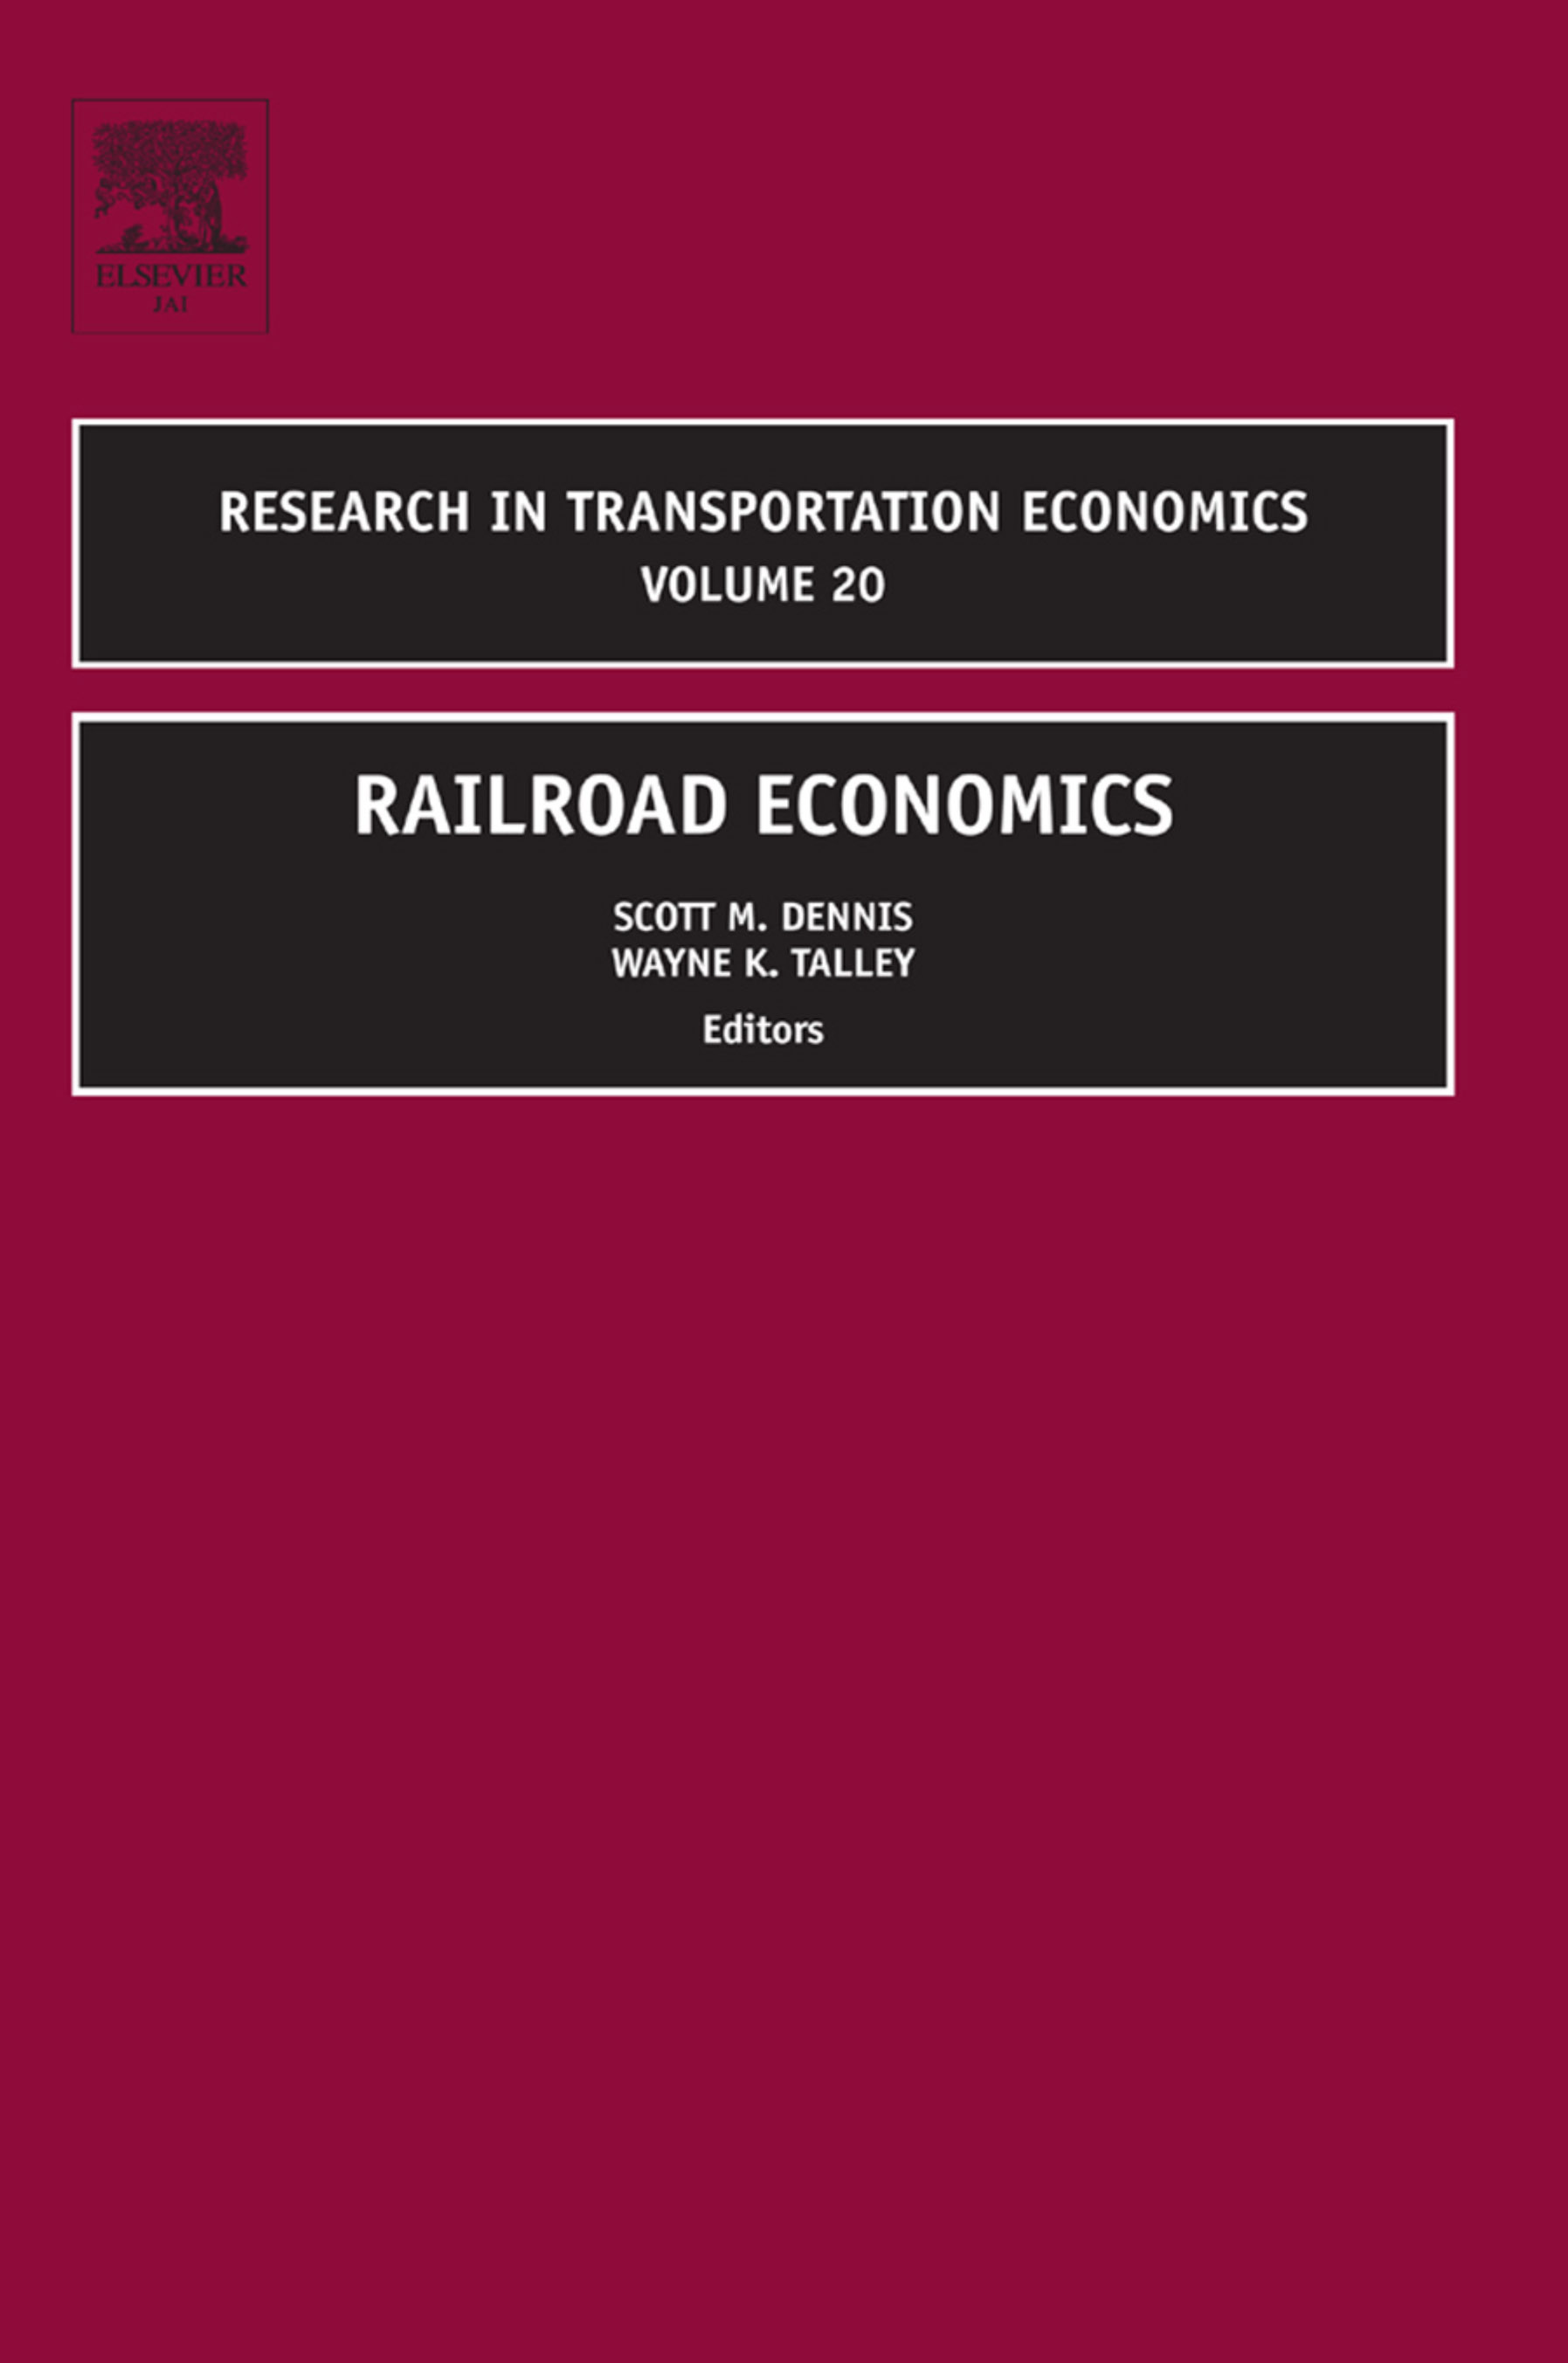 Download Ebook Railroad Economics by Scott Dennis Pdf